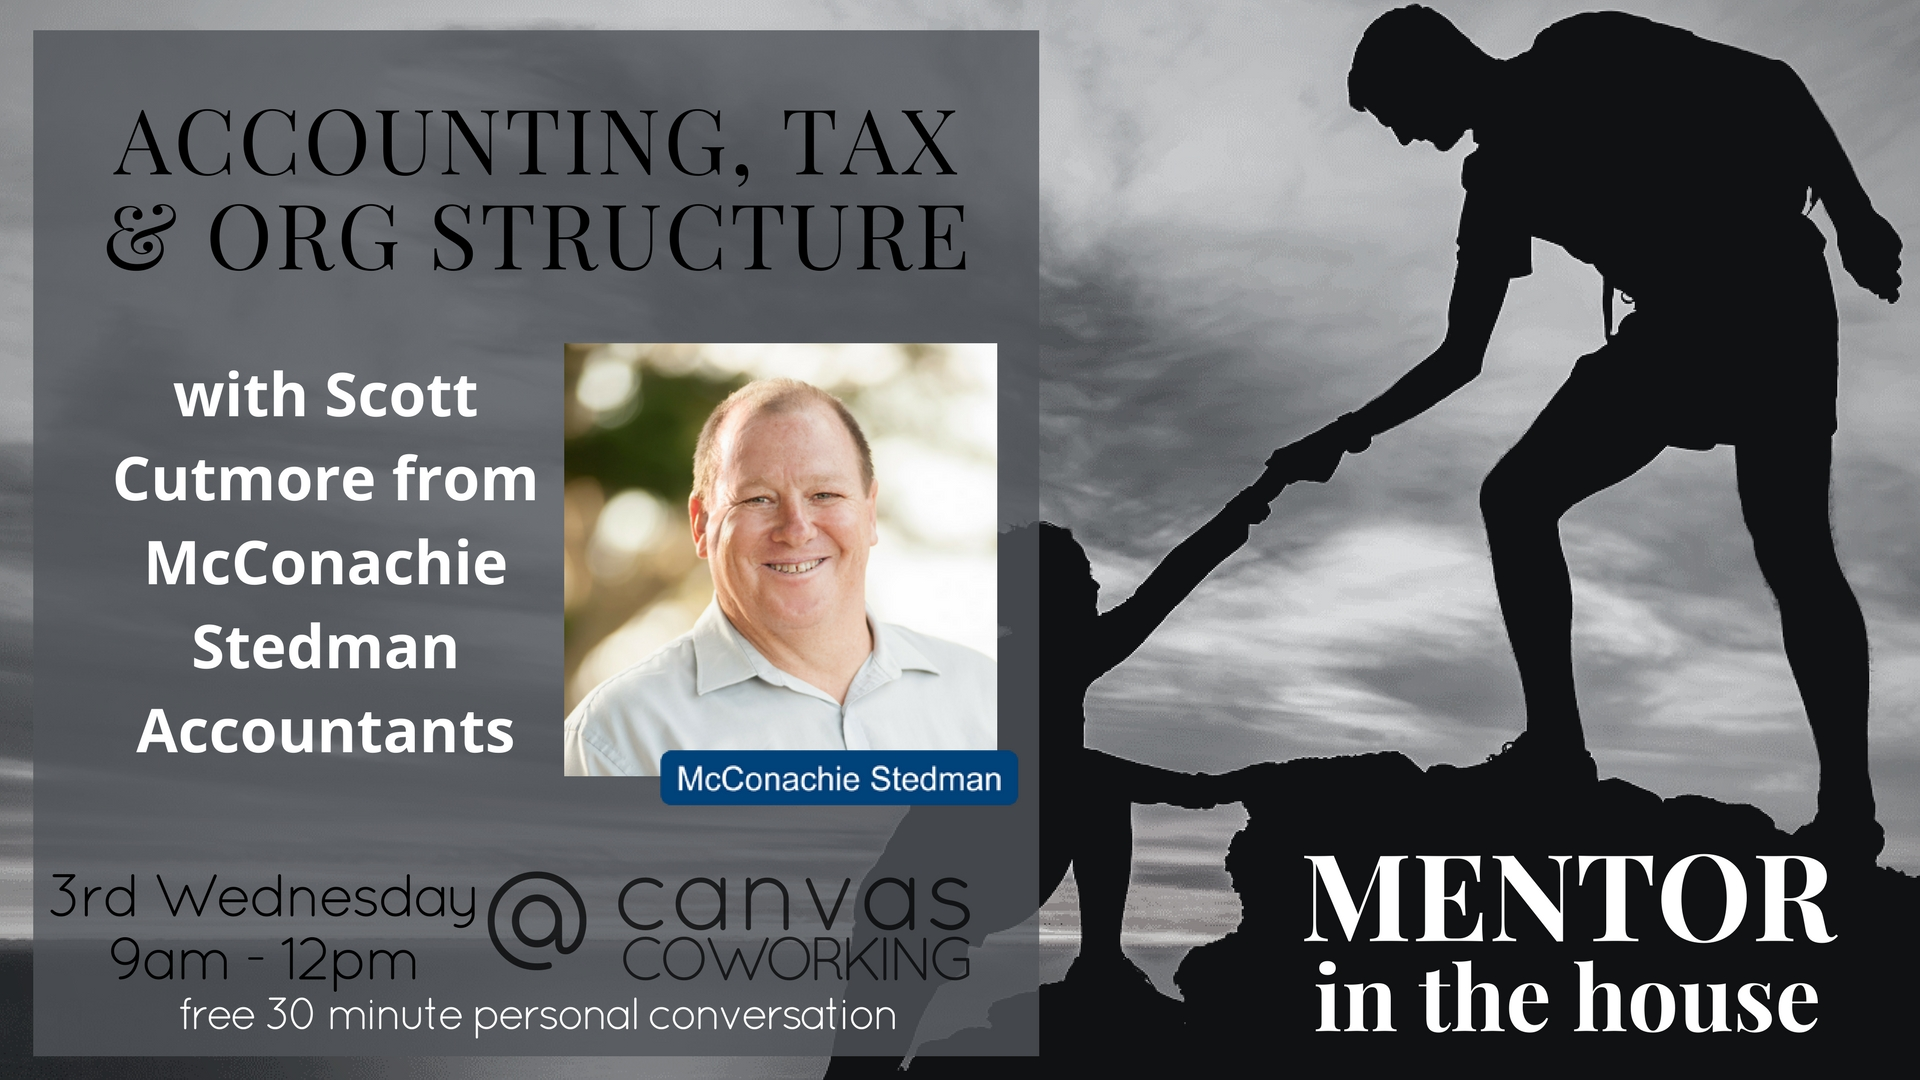 Mentor in the House - Accounting - Scott Cutmore - 3rd Wednesday of the month - Canvas Coworking